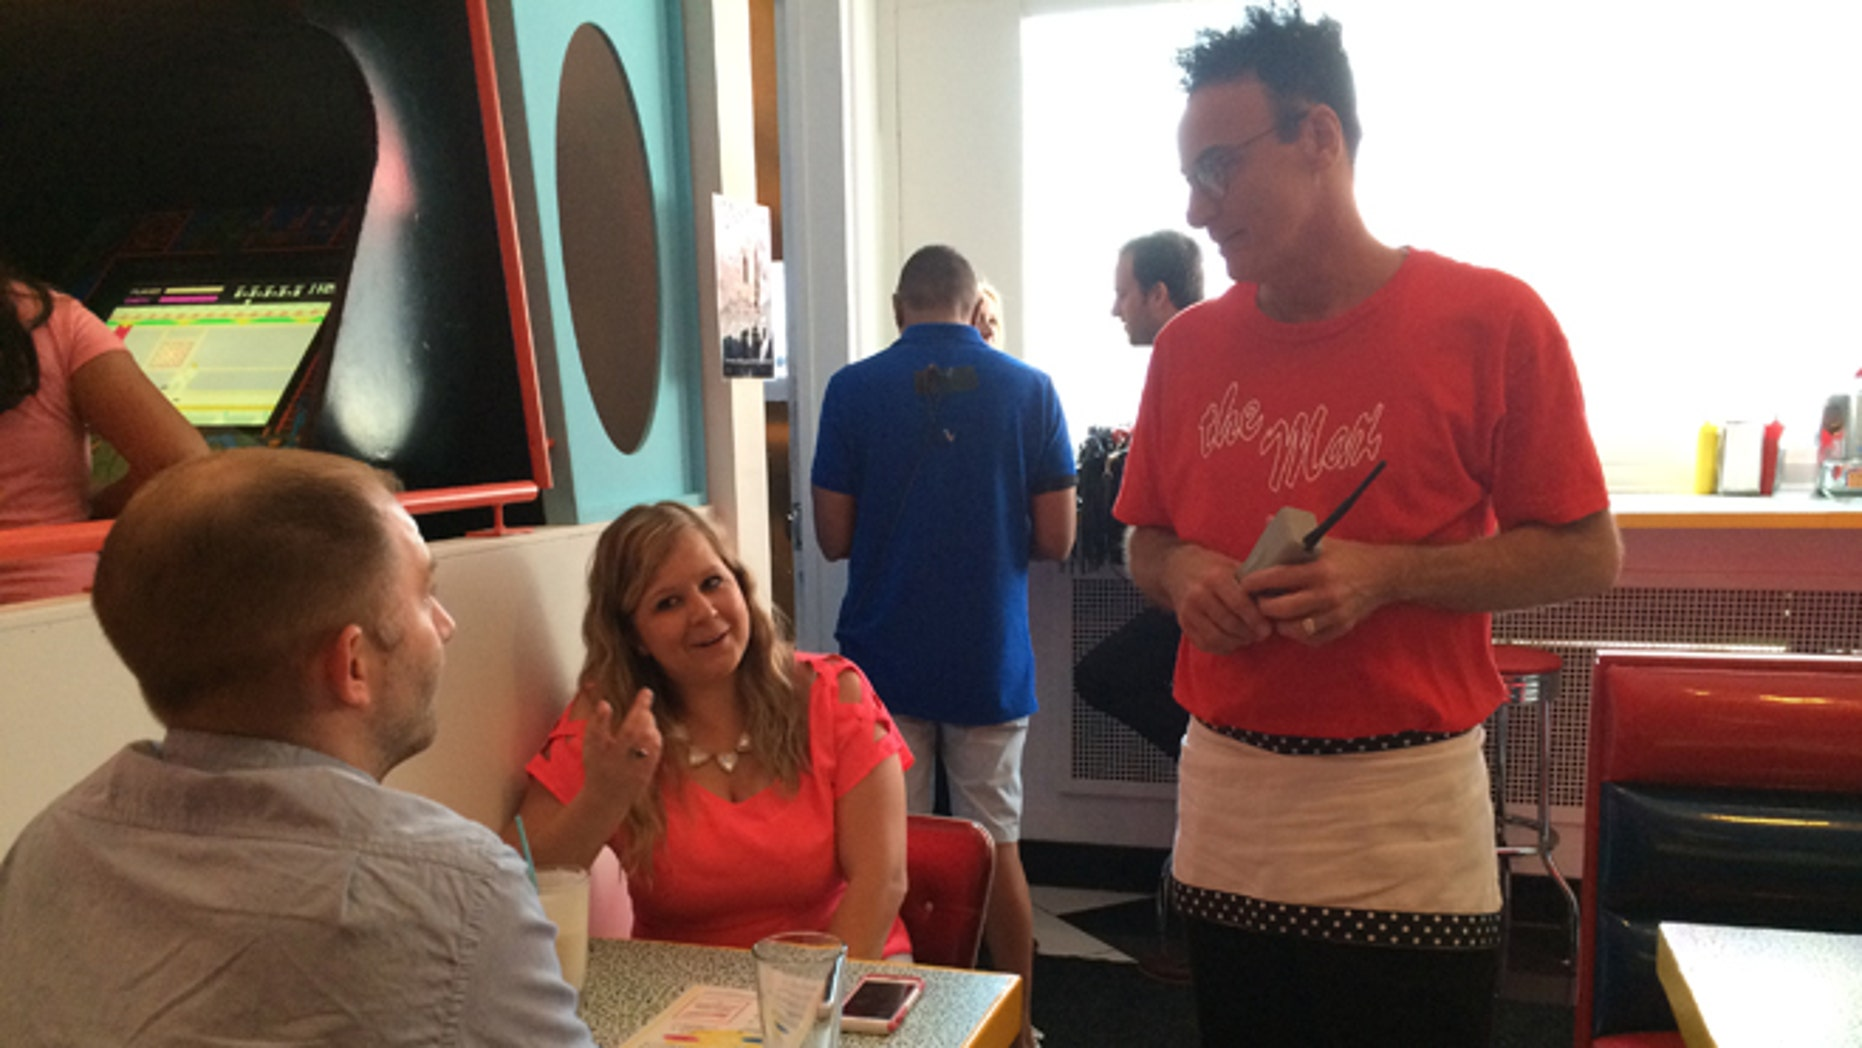 "In this Wednesday, June 1, 2016 photo, original ""Saved by the Bell"" castmember Ed Alonzo, right, talks to Steve Gross and Tiffany Gross at pop-up restaurant Saved by the Max in Chicago. A vacant restaurant space in Chicagoâs Wicker Park neighborhood has become a replica of The Max, the fictitious hangout from the TV sitcom ""Saved by the Bell."" (AP Photo/Terry Tang)"